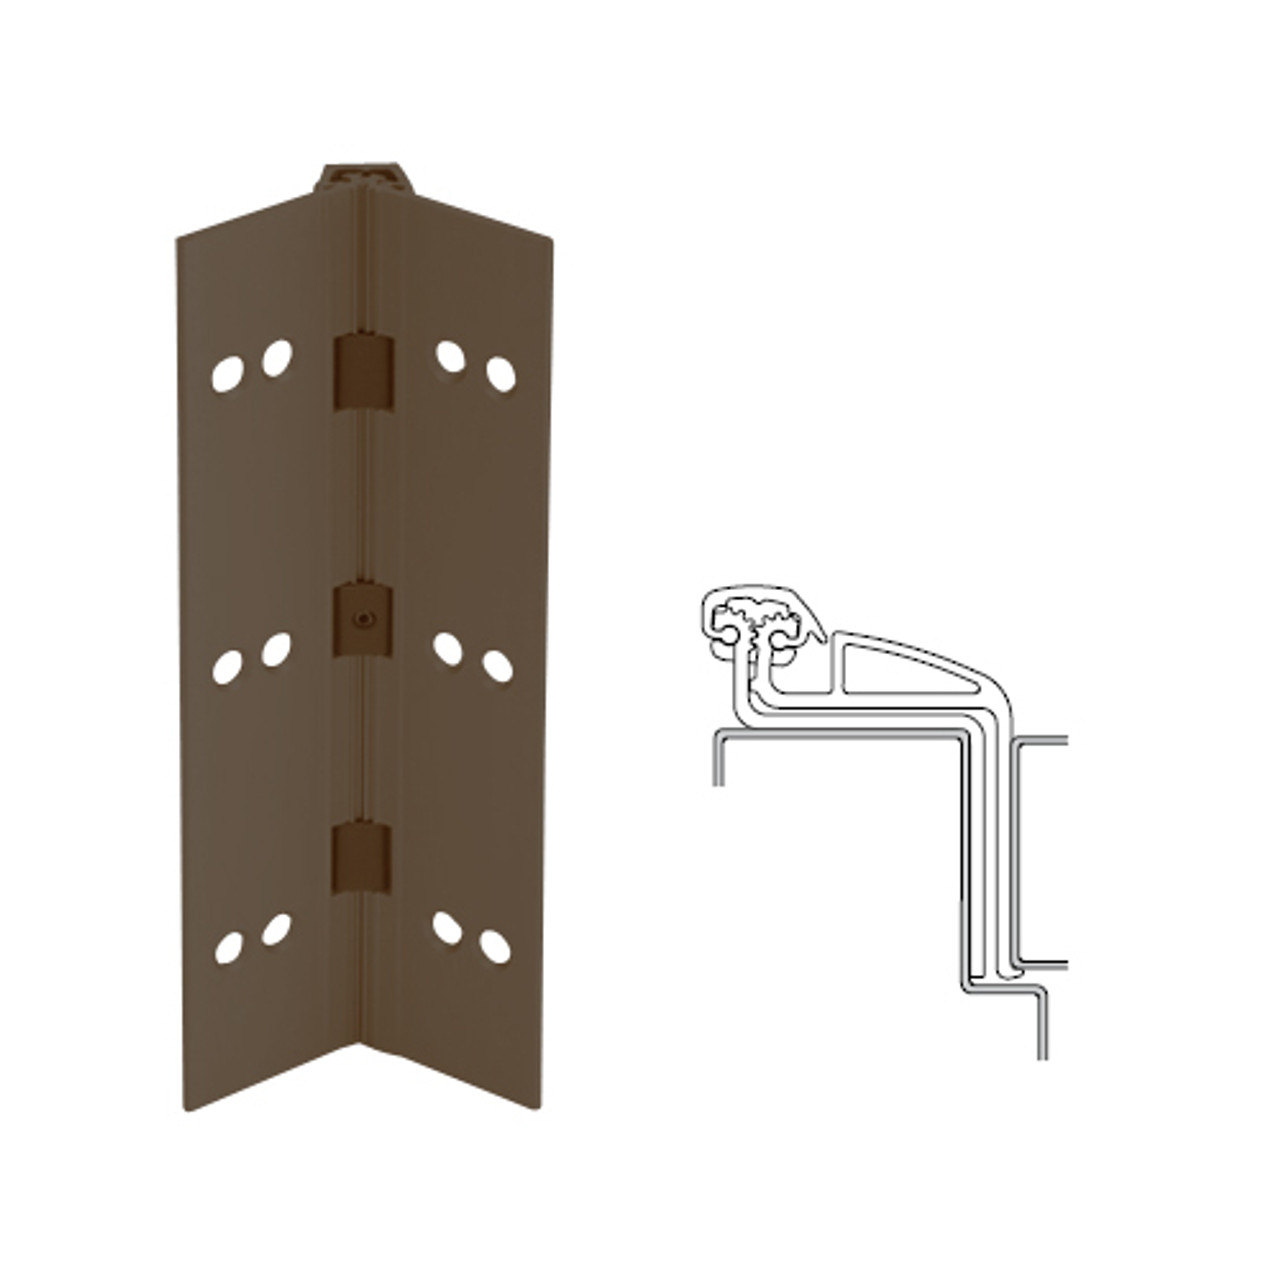 041XY-313AN-83-TF IVES Full Mortise Continuous Geared Hinges with Thread Forming Screws in Dark Bronze Anodized